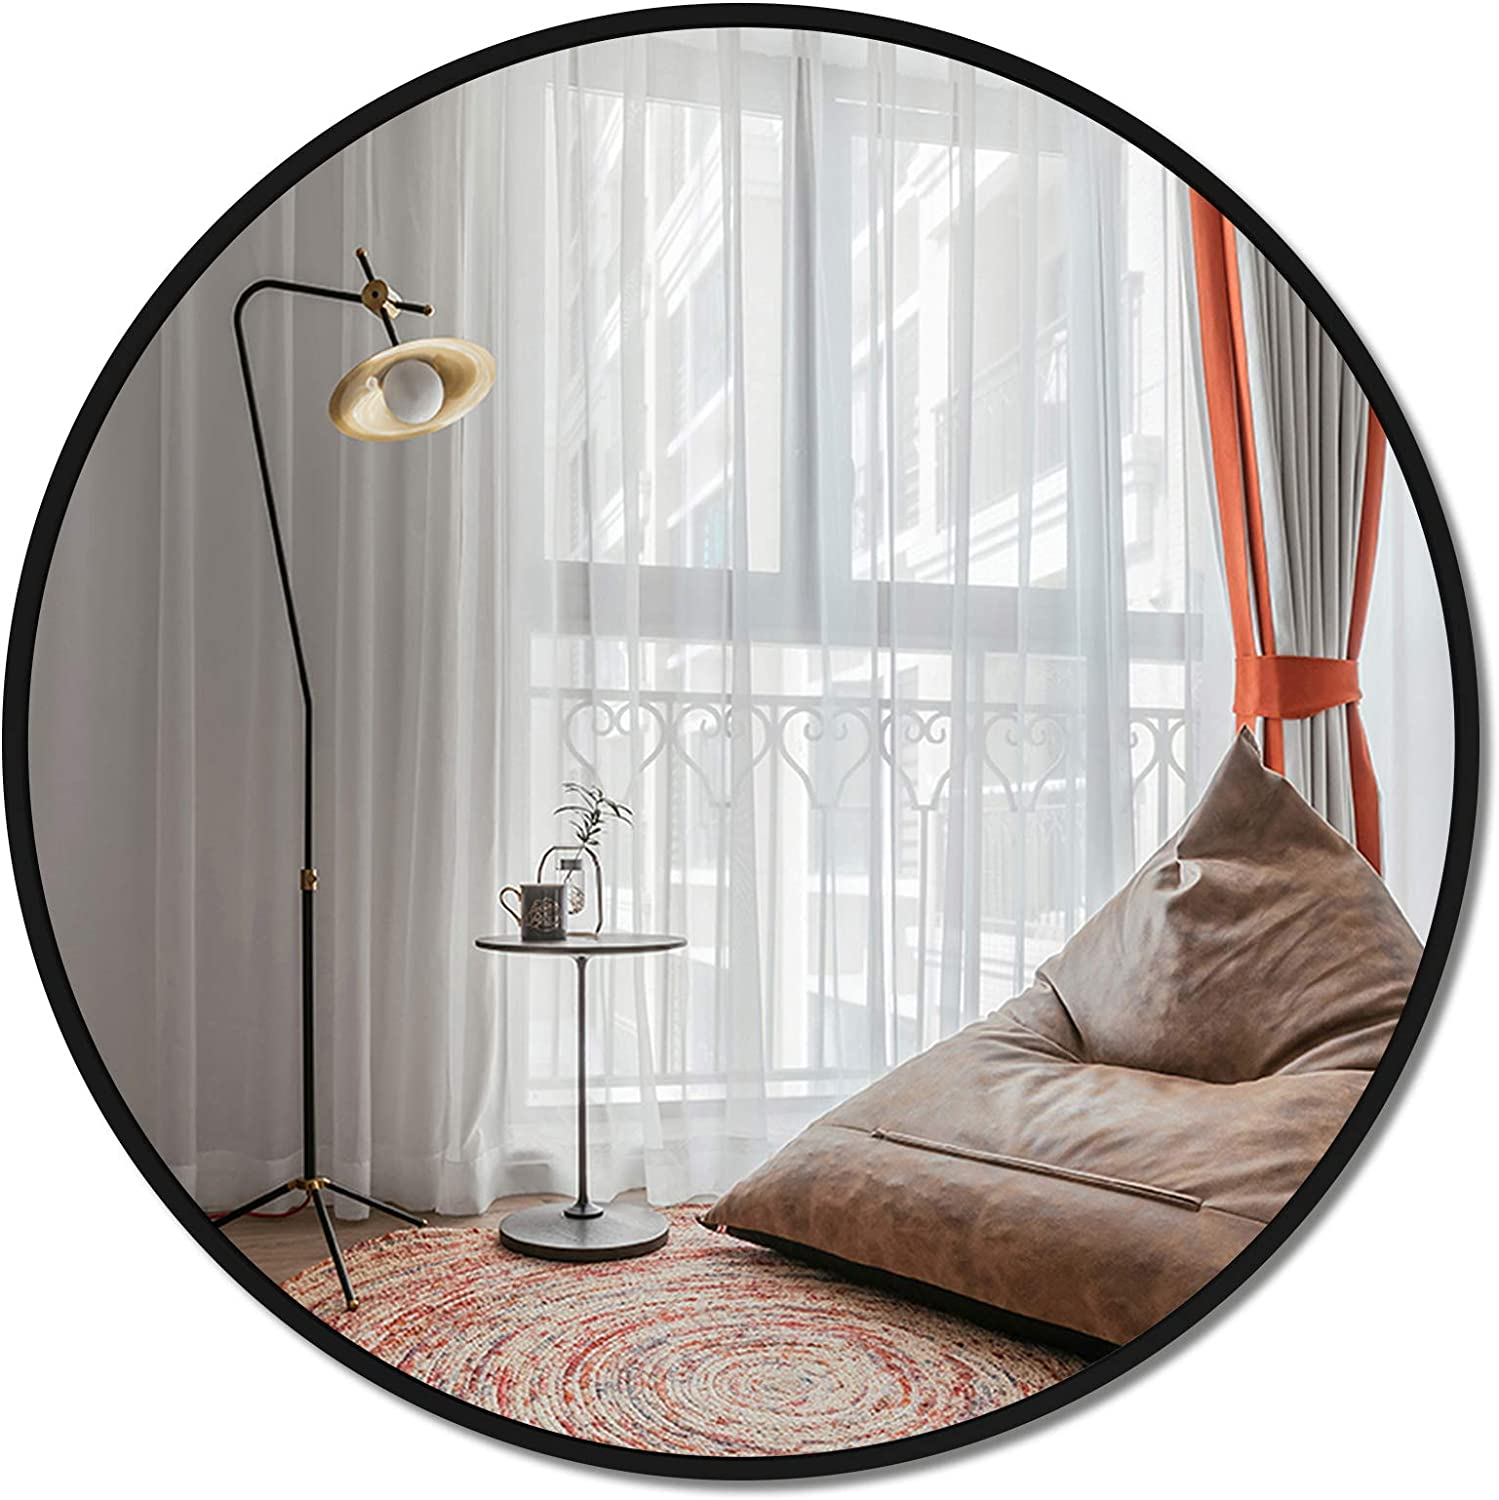 LRGLASS 36 Inches Round Mirror, Large Wall-Mounted, Circle Black Metal Framed Mirror, Hanging Modern Decor for Bathroom, Living Room, Entryway, Dressing Room